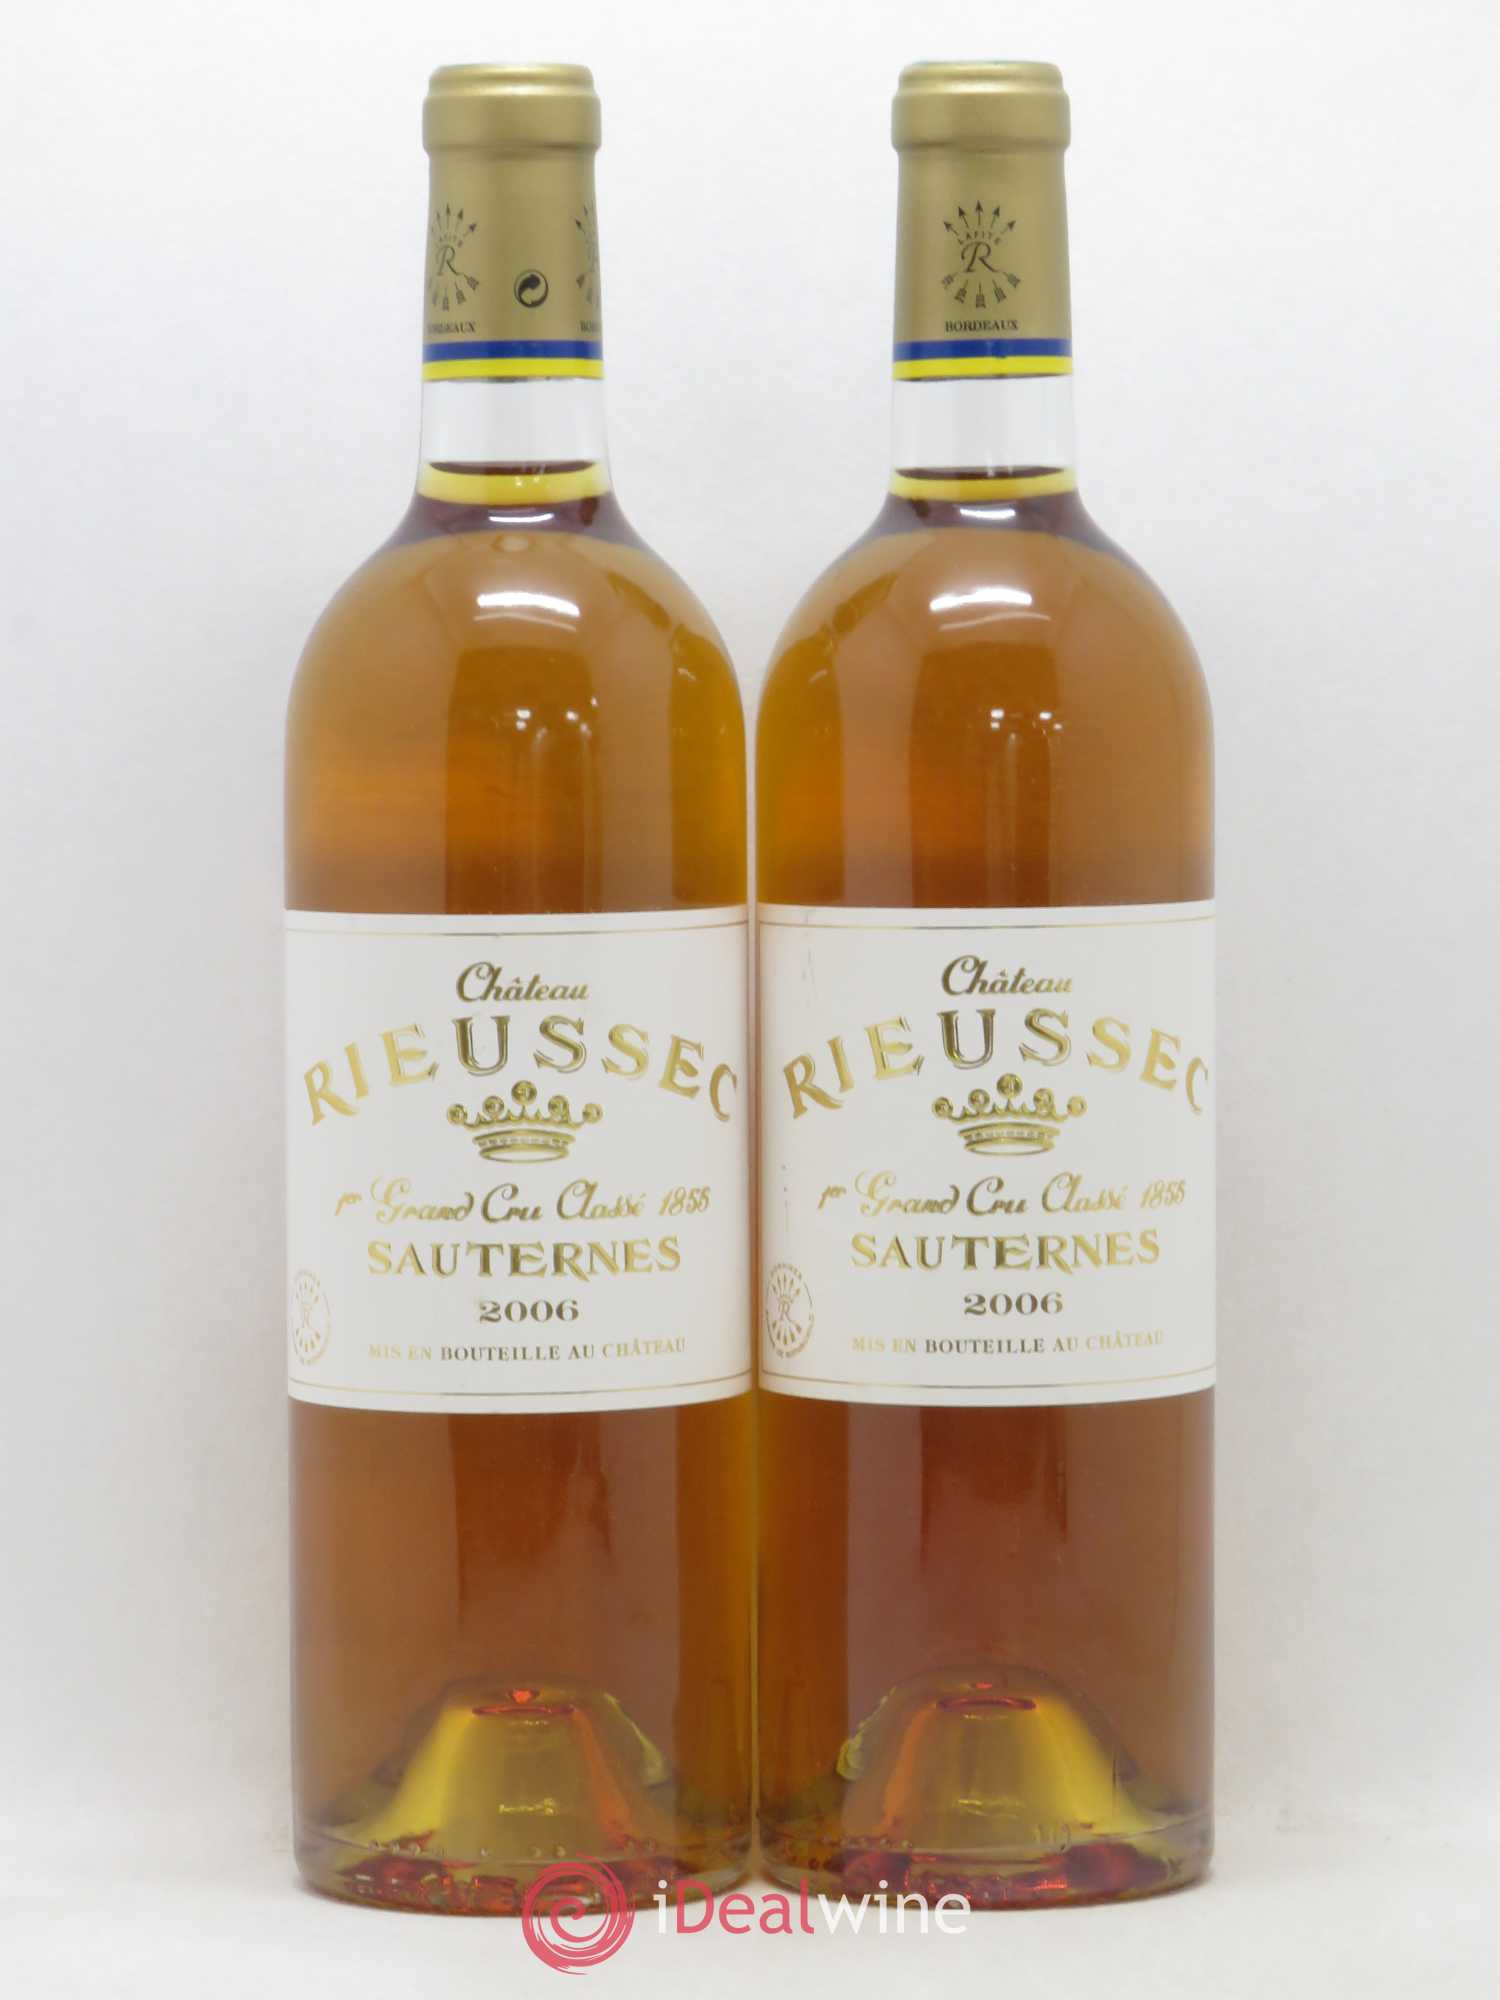 Château Rieussec 1er Grand Cru Classé  2006 - Lot of 2 Bottles